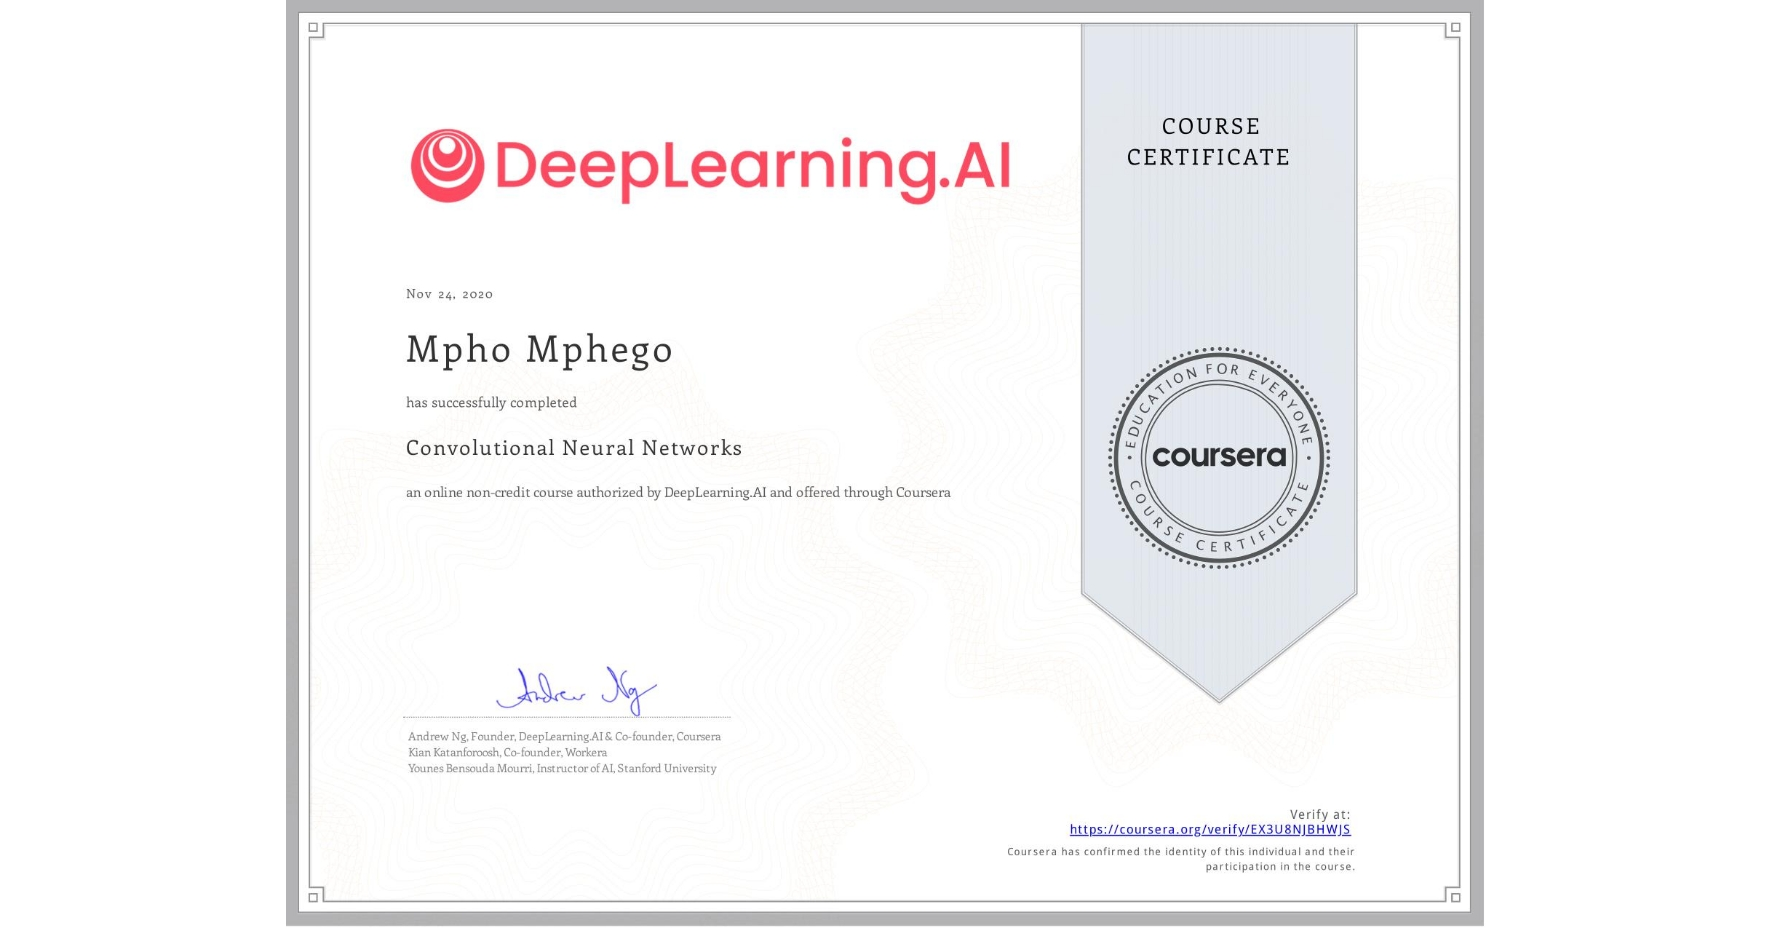 View certificate for Mpho Mphego, Convolutional Neural Networks, an online non-credit course authorized by DeepLearning.AI and offered through Coursera